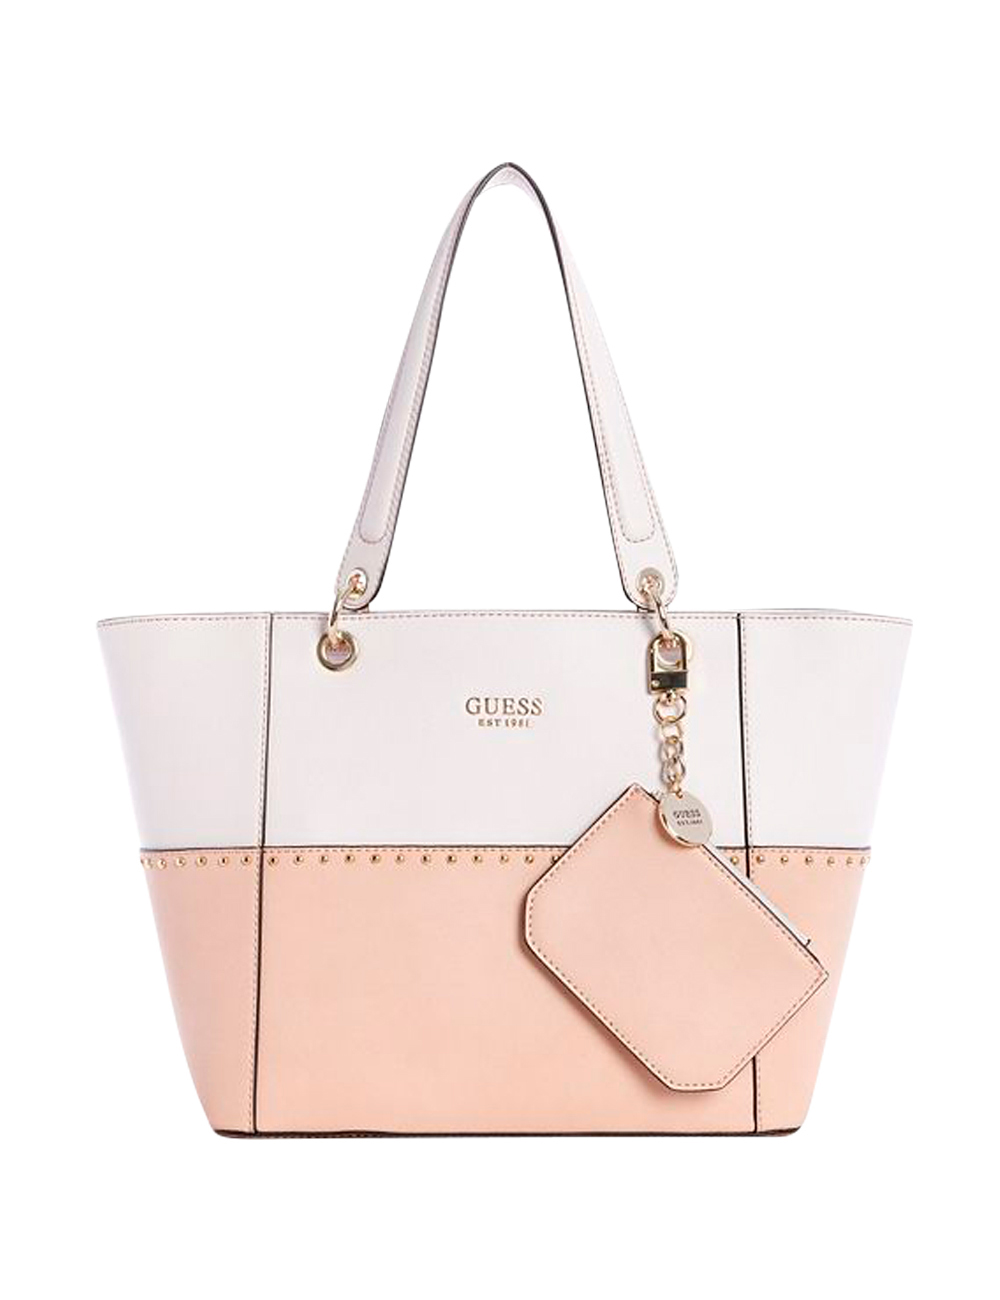 1475583e6b Sac à main Guess «Kamryn», couleur rose